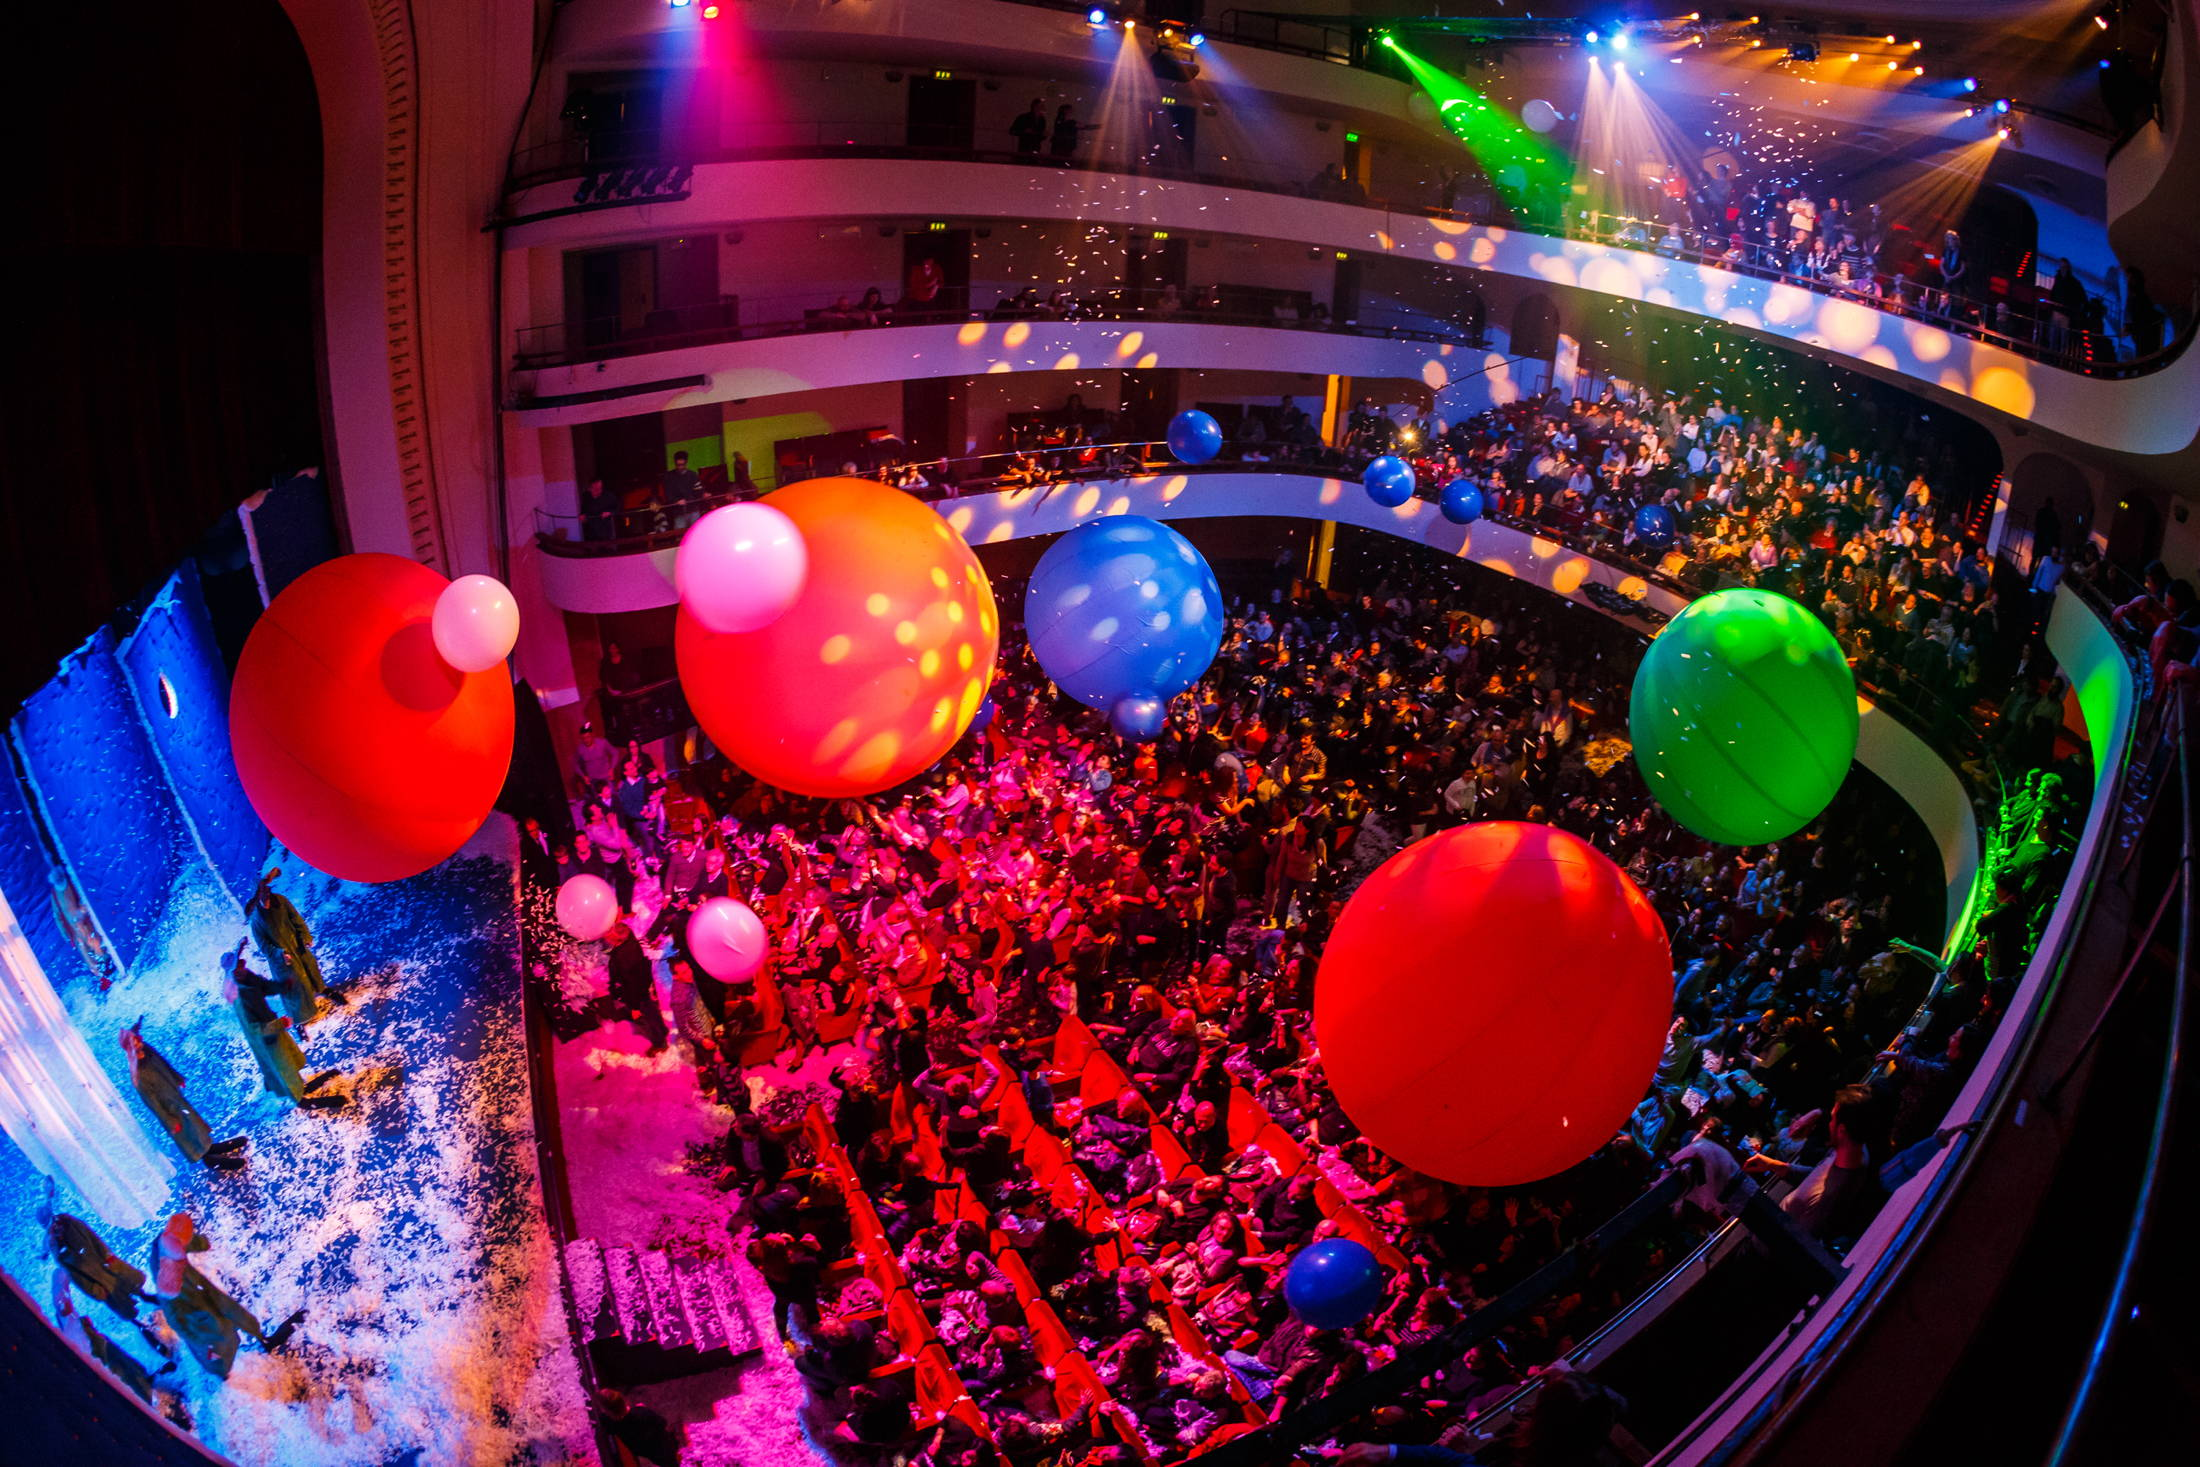 """Moment of the """"Slava's snowshow"""" at Teatro Duse in Bologna"""